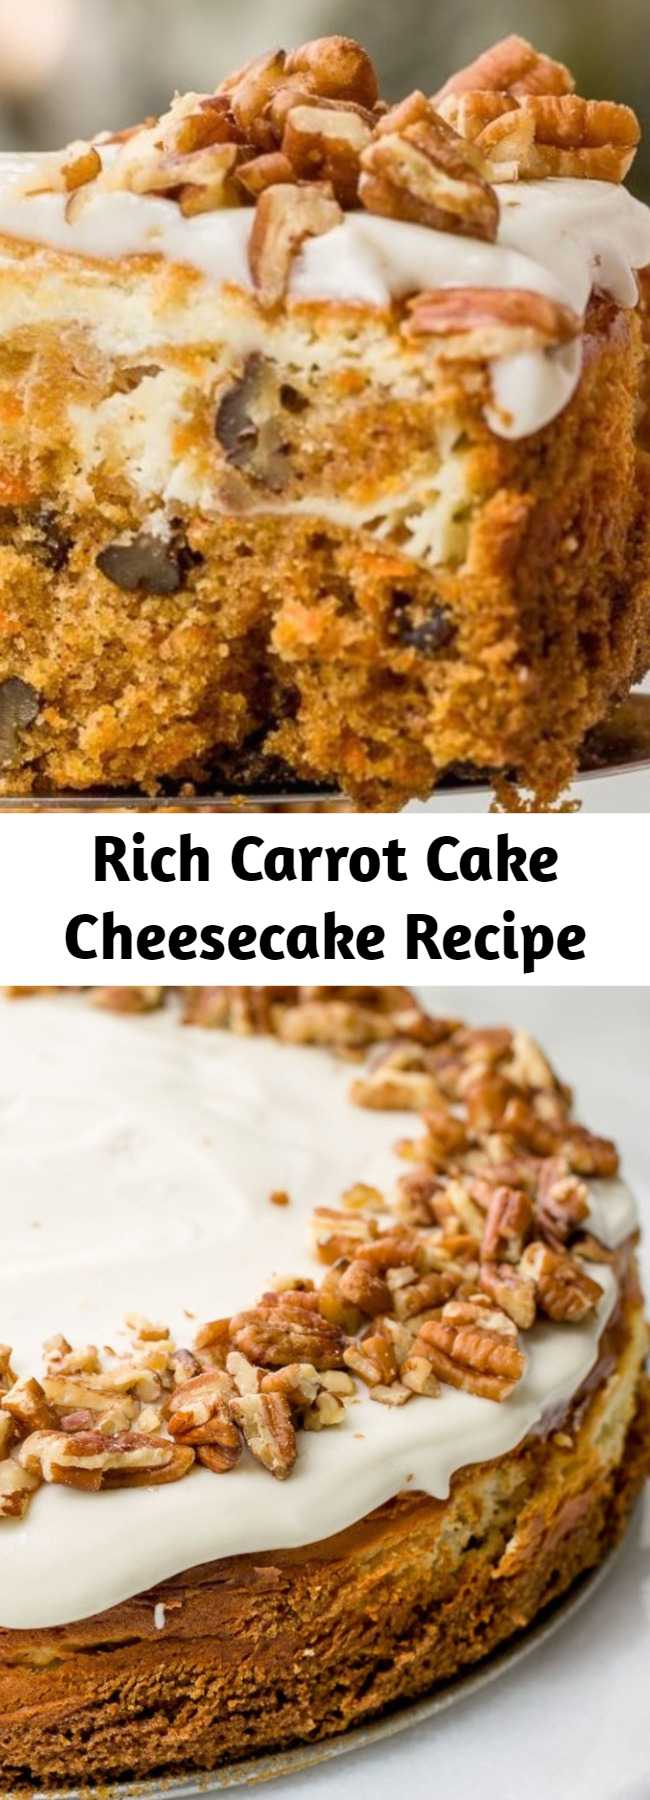 Rich Carrot Cake Cheesecake Recipe - Mash-ups don't get much better than this. With classic carrot cake on the bottom and rich, creamy cheesecake on top, we can't think of a better Easter dessert.